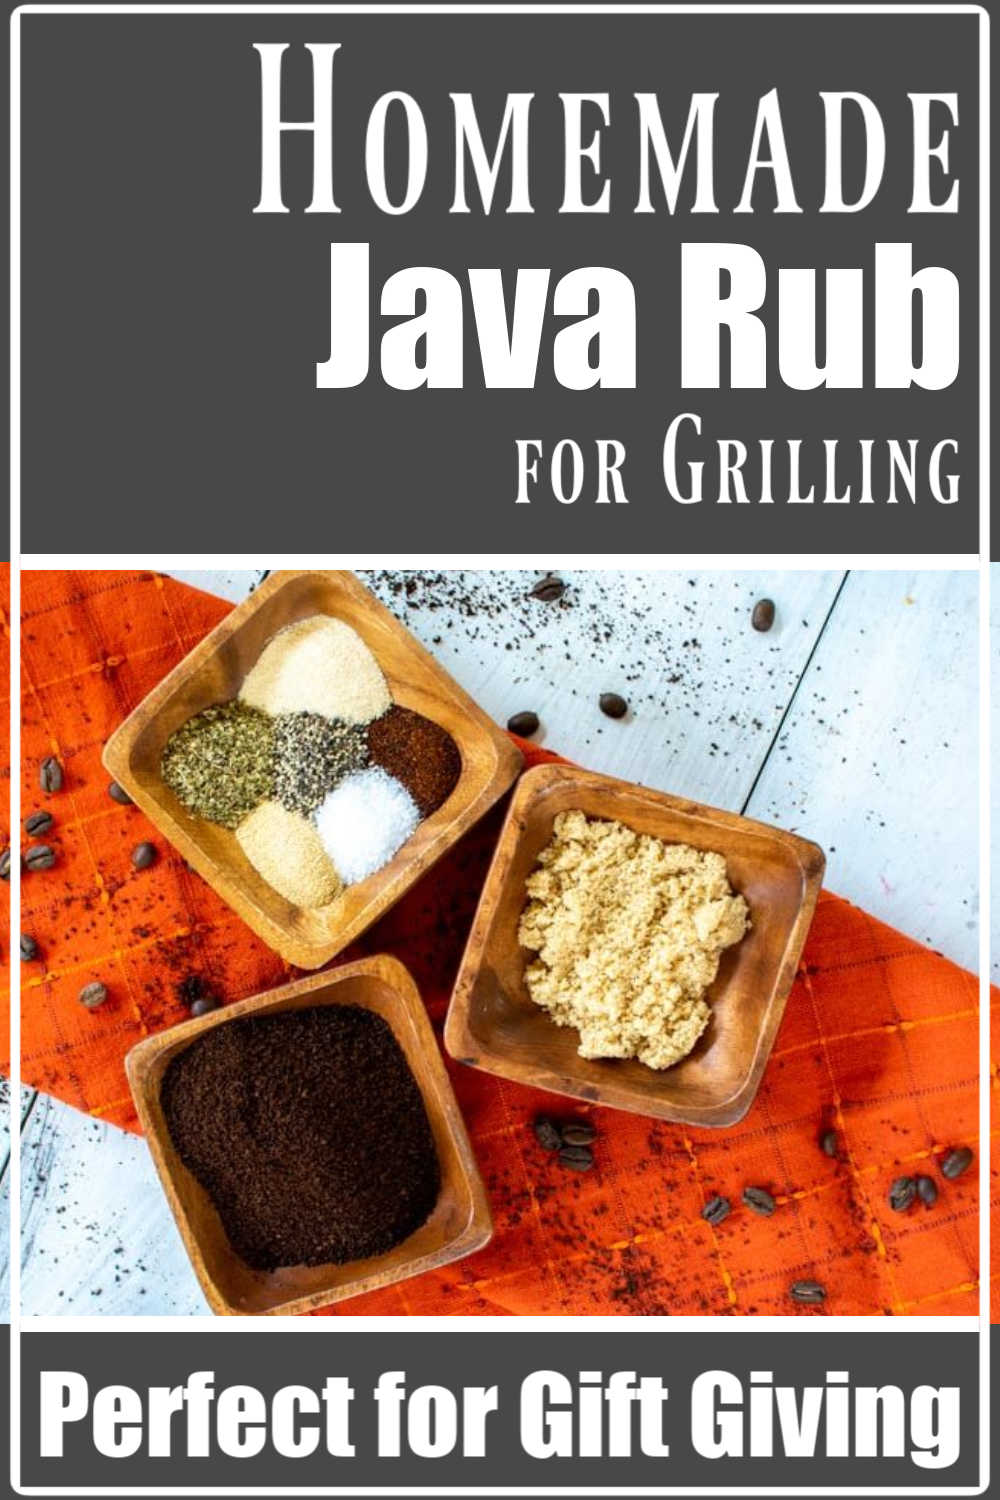 Homemade Java Rub for Grilling